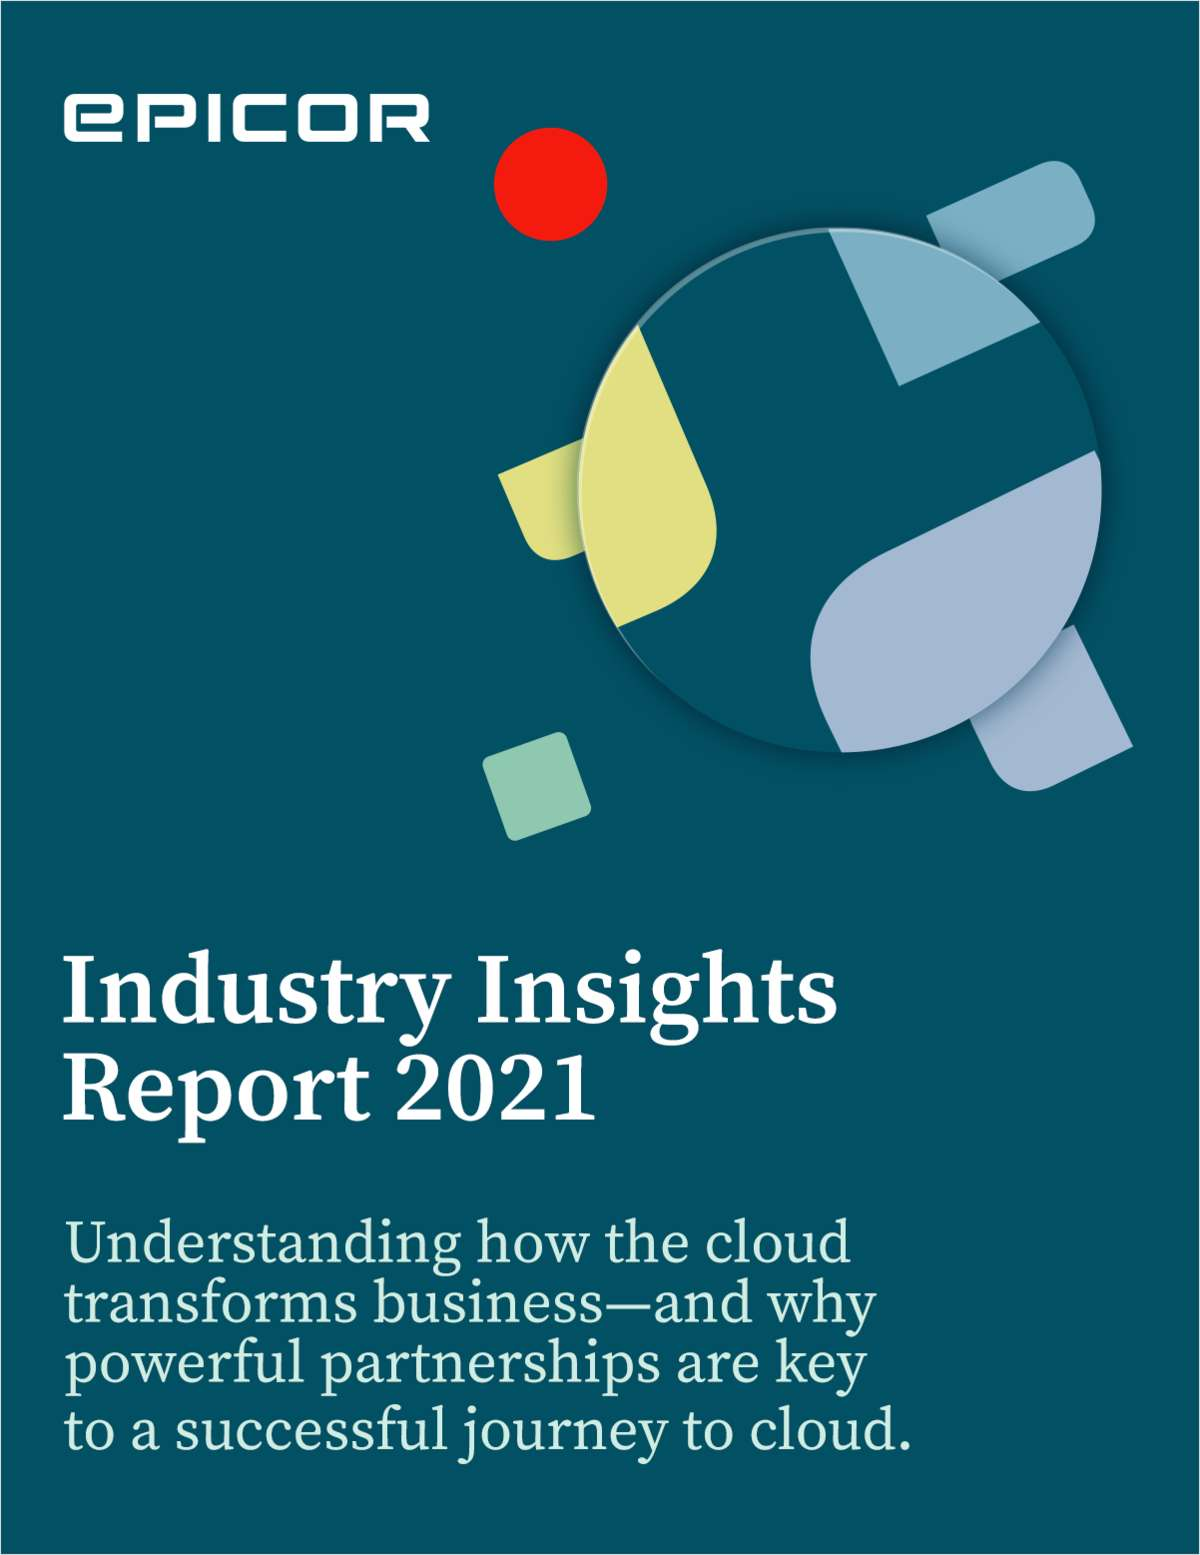 Learn Why 99% of Tech Leaders Plan to Migrate to the Cloud